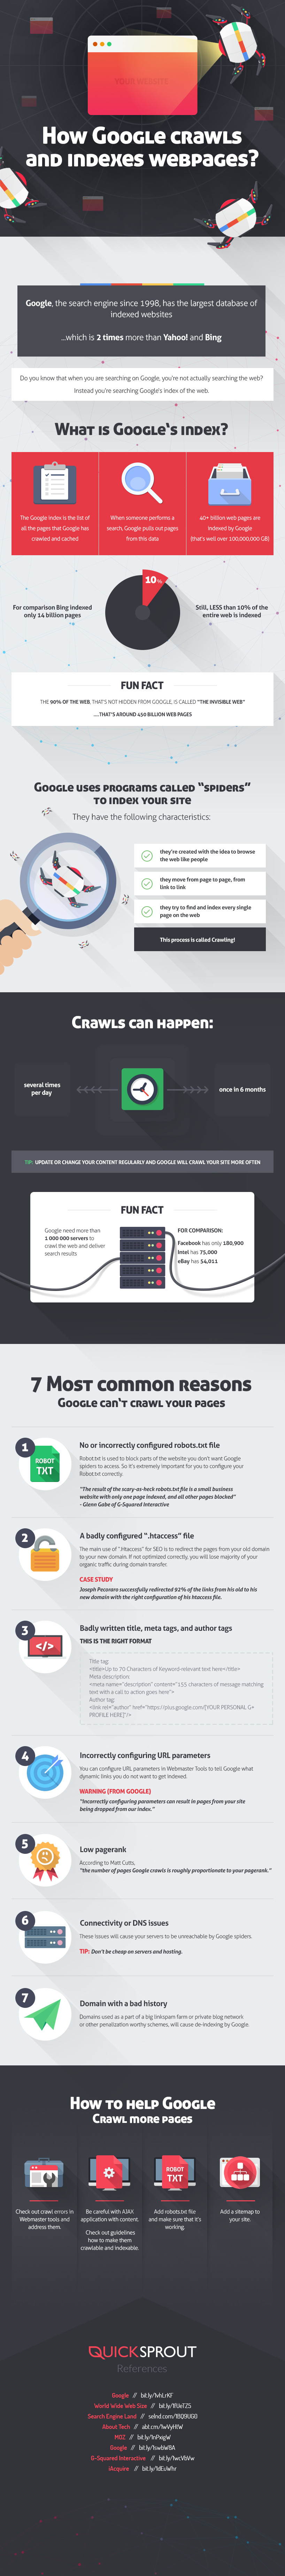 How Google Crawls and Indexes Web Pages